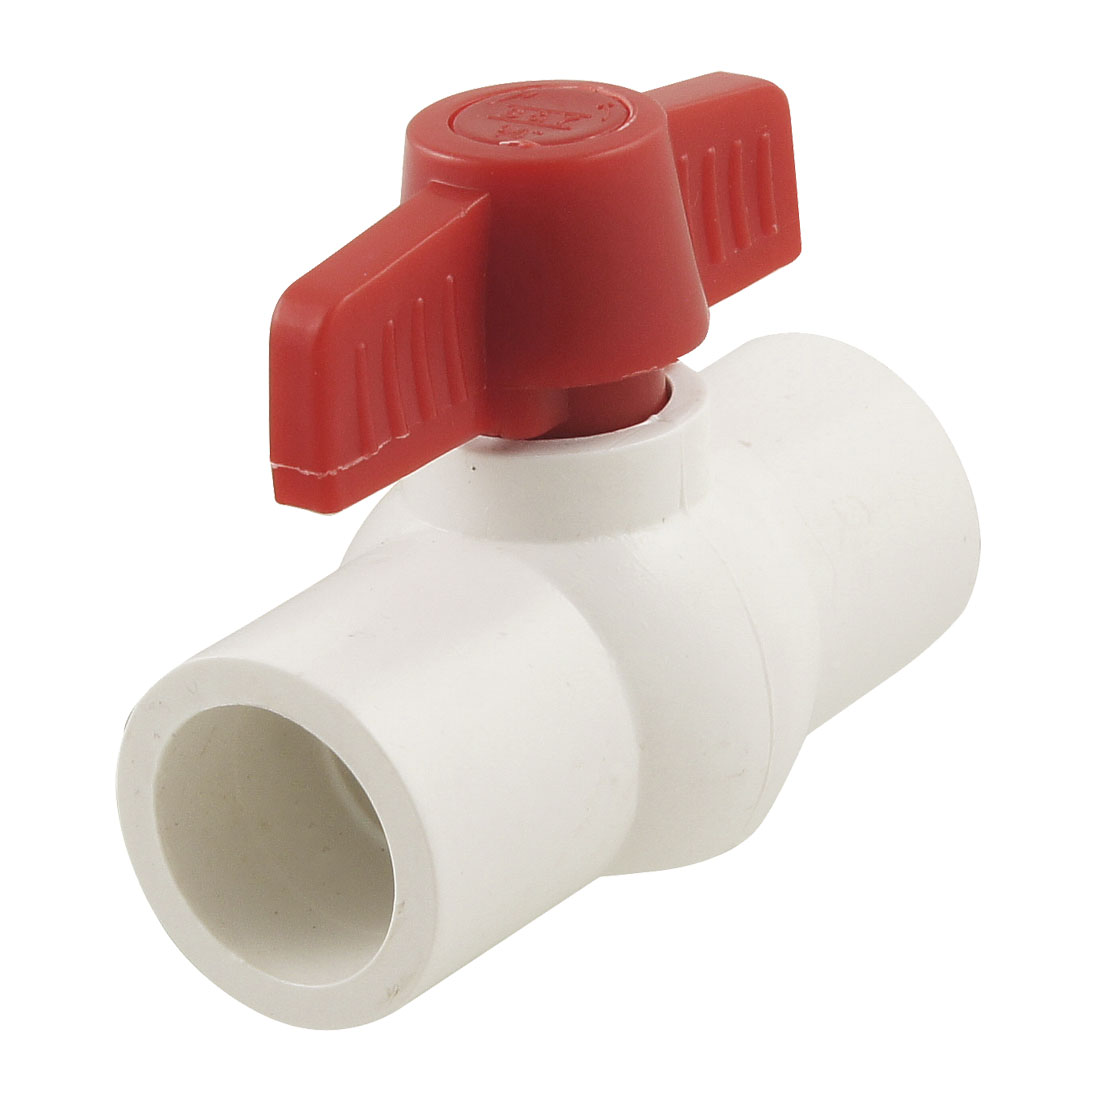 "Plumbing 1"" x 1"" Slip Ends Water Control PVC Ball Valve White Red"